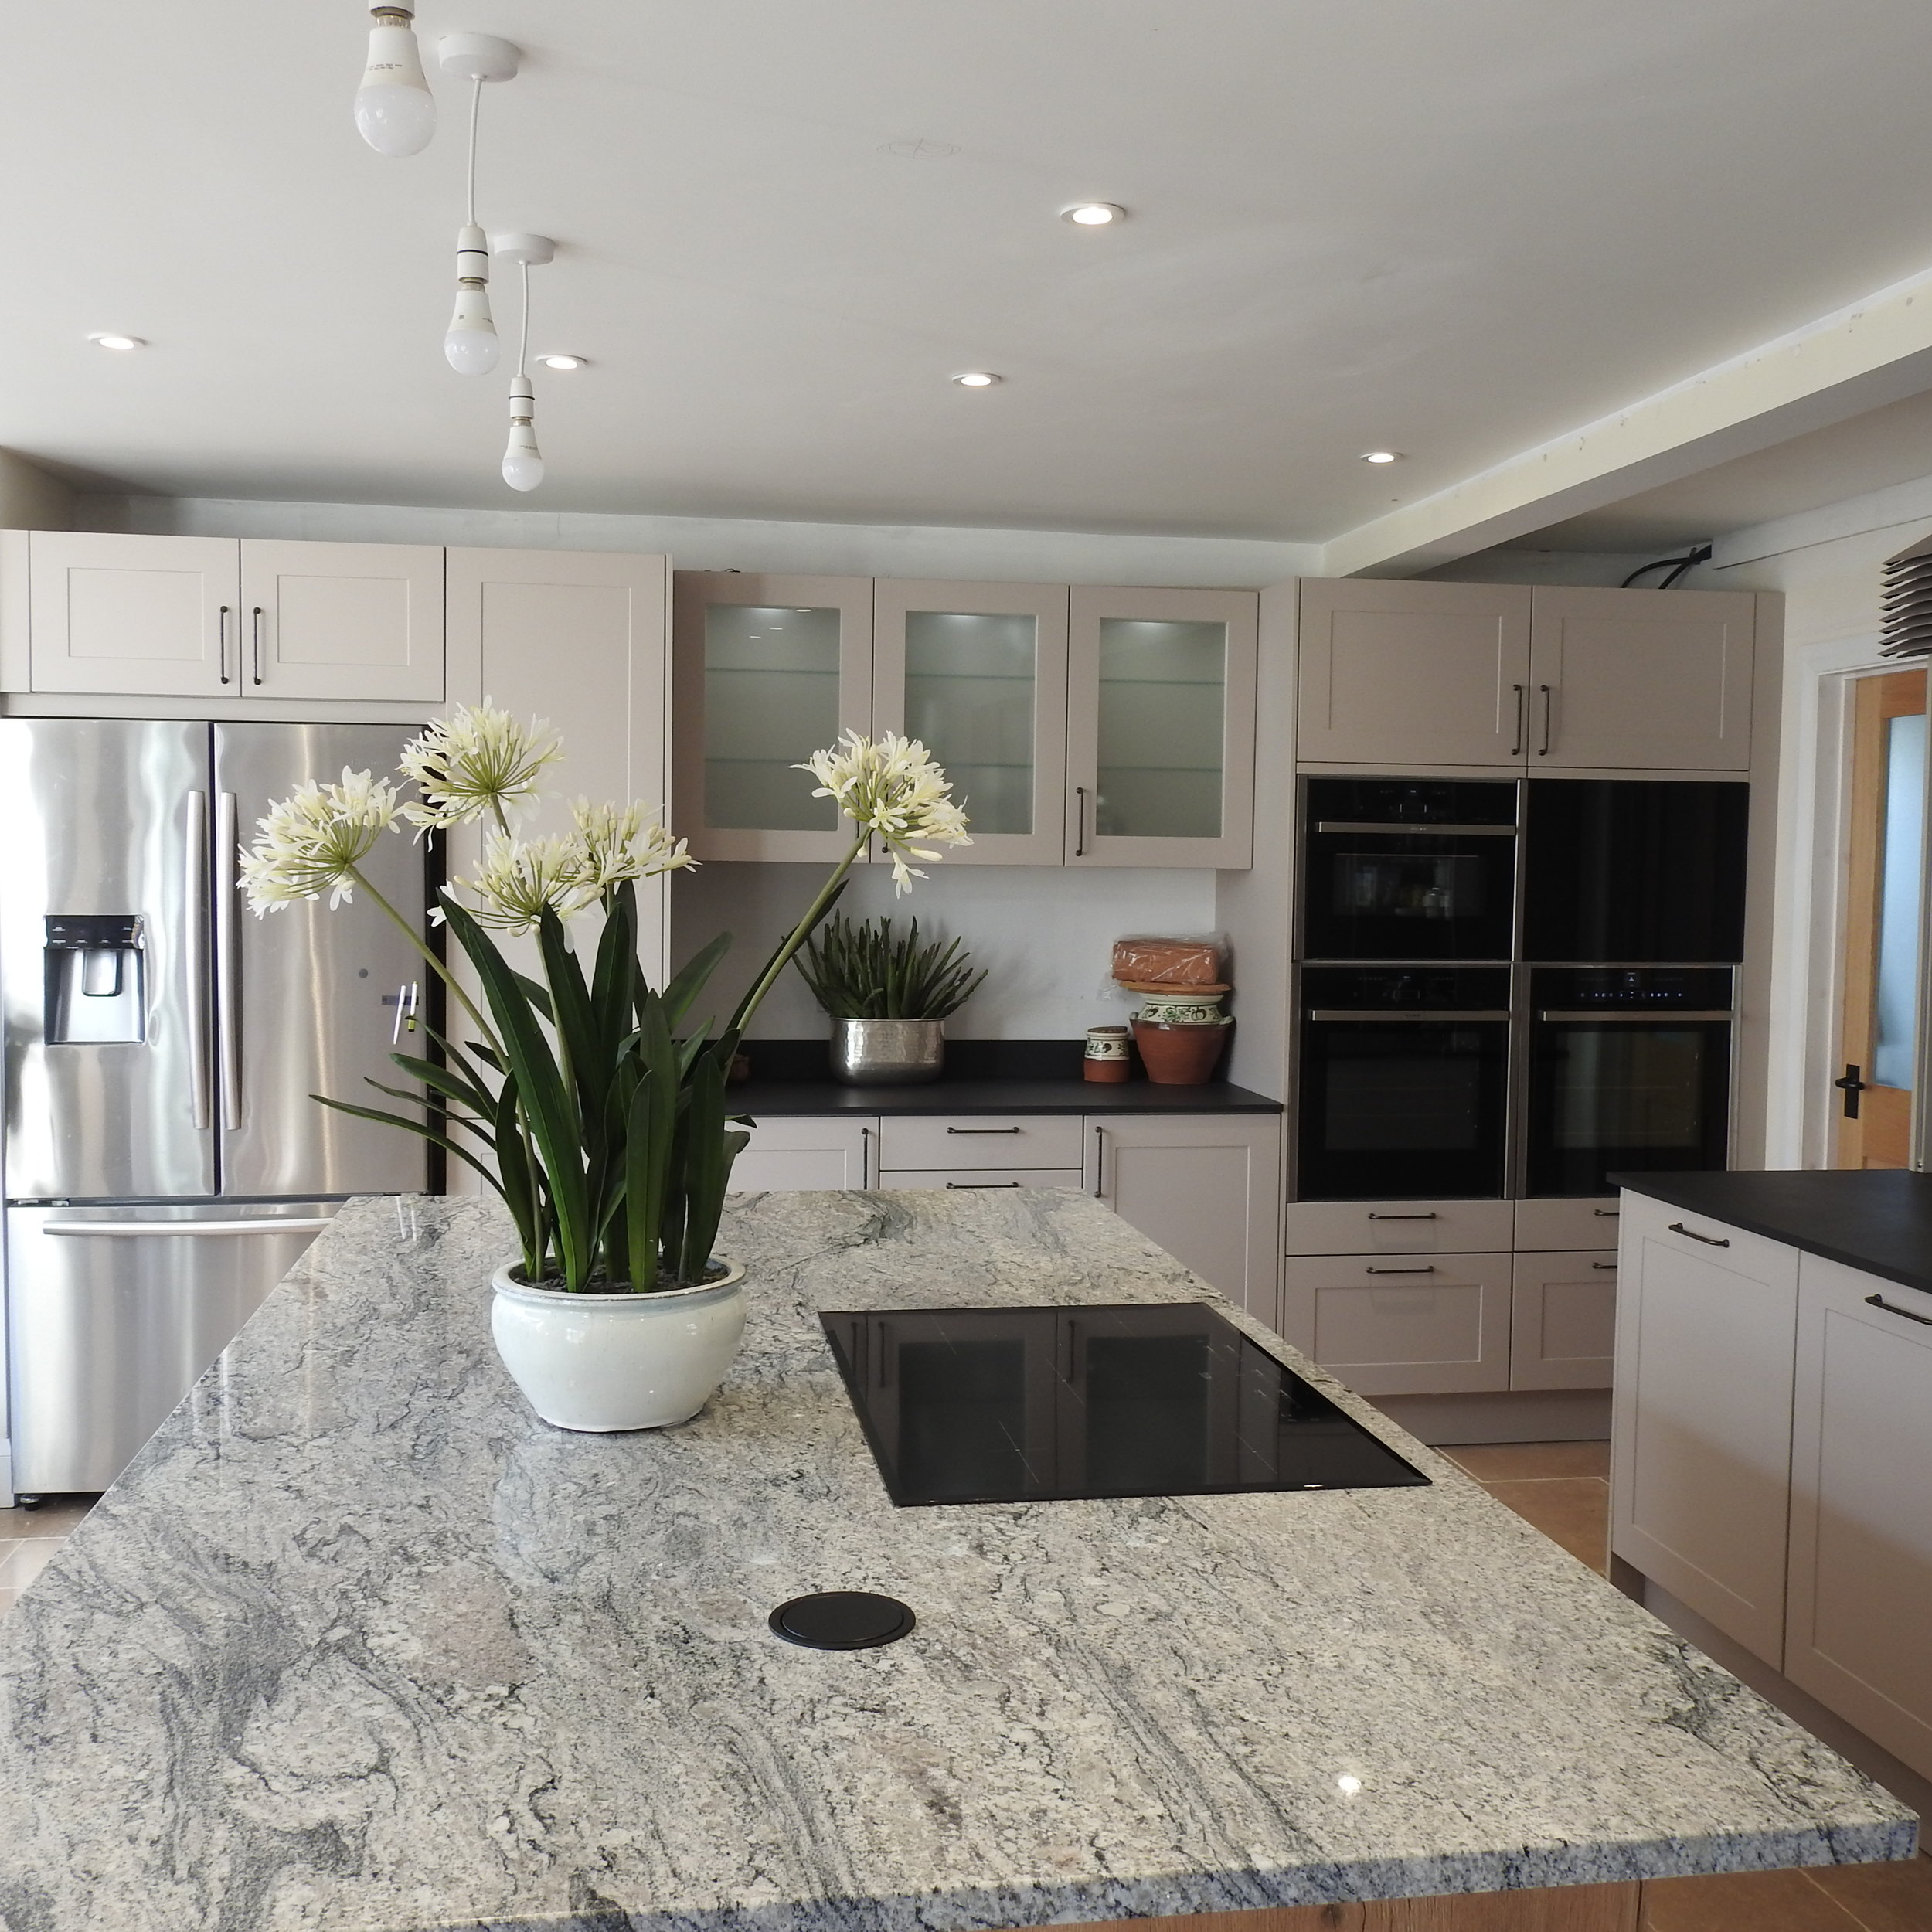 The Result - fabulous & functional Kitchen -'the heart of so much that matters in a home.' -